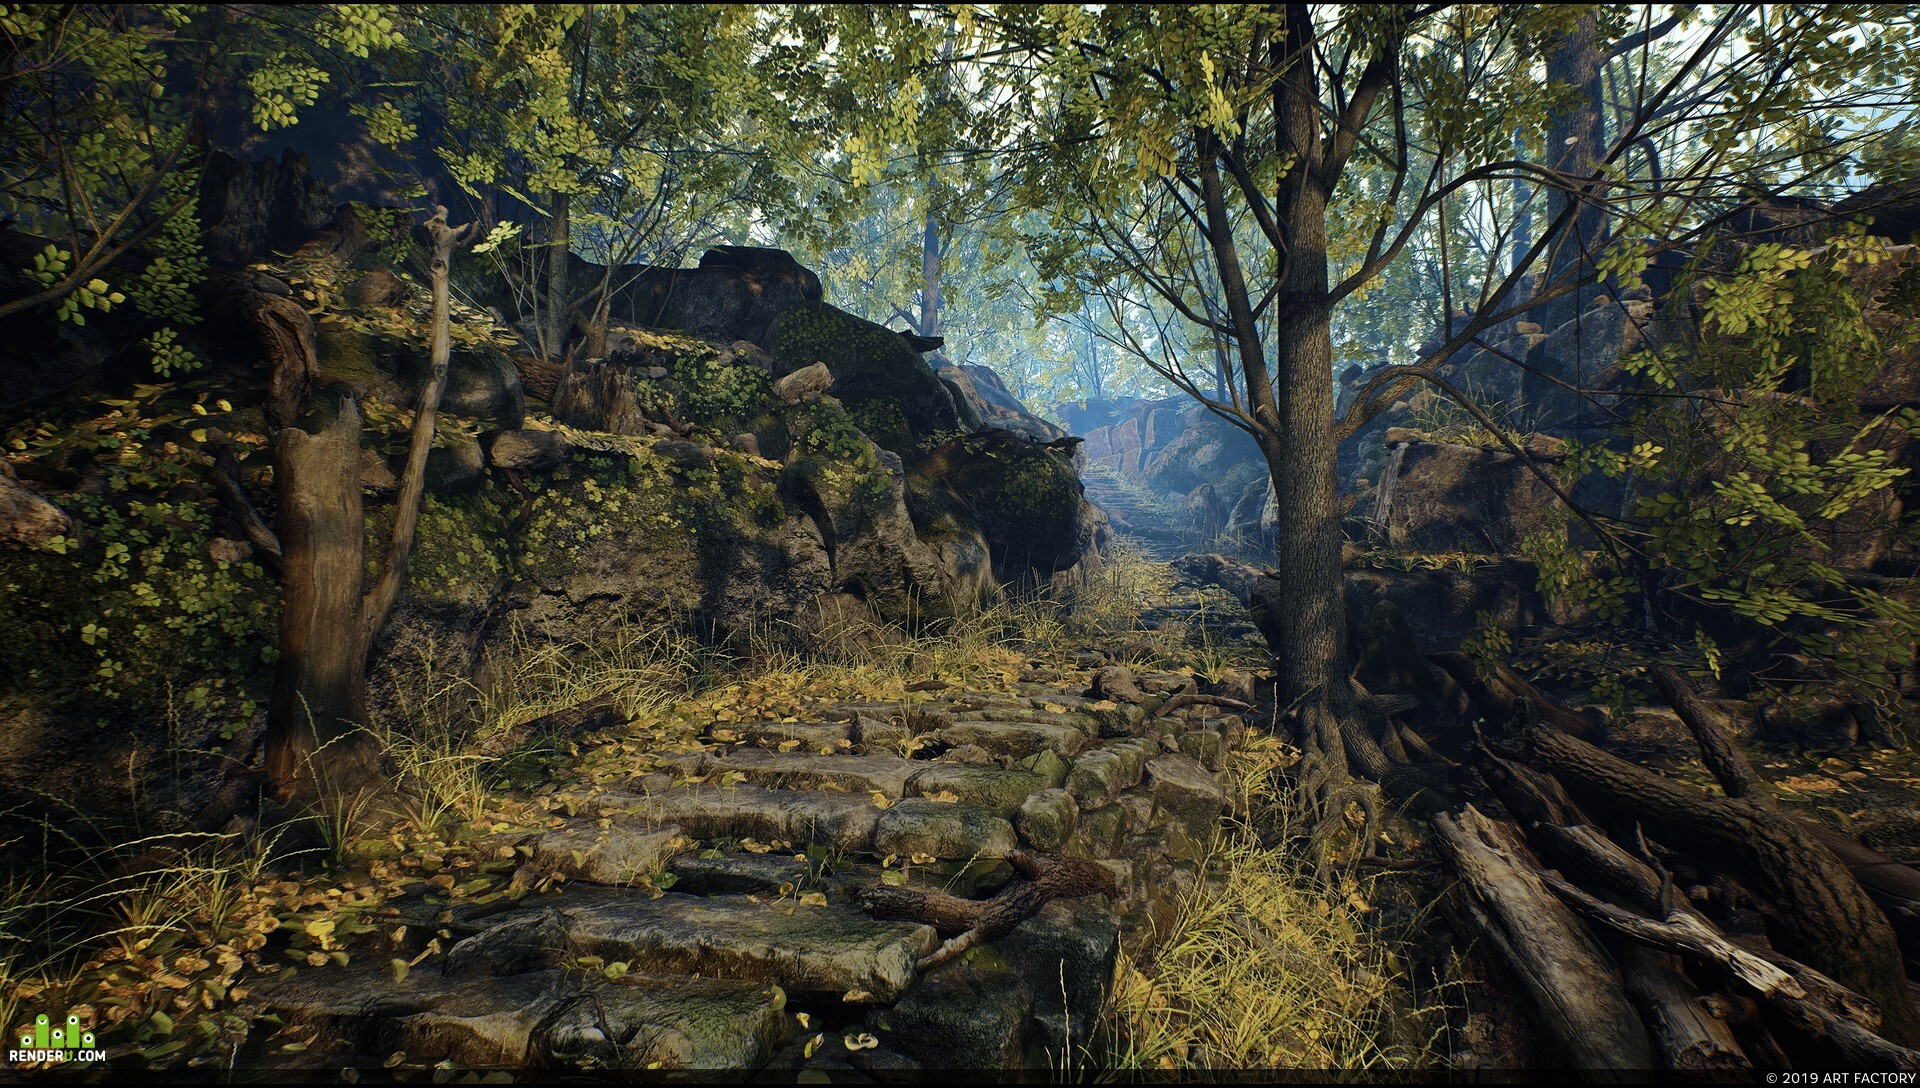 preview environment - forest, step, stones, trees, sun, shade